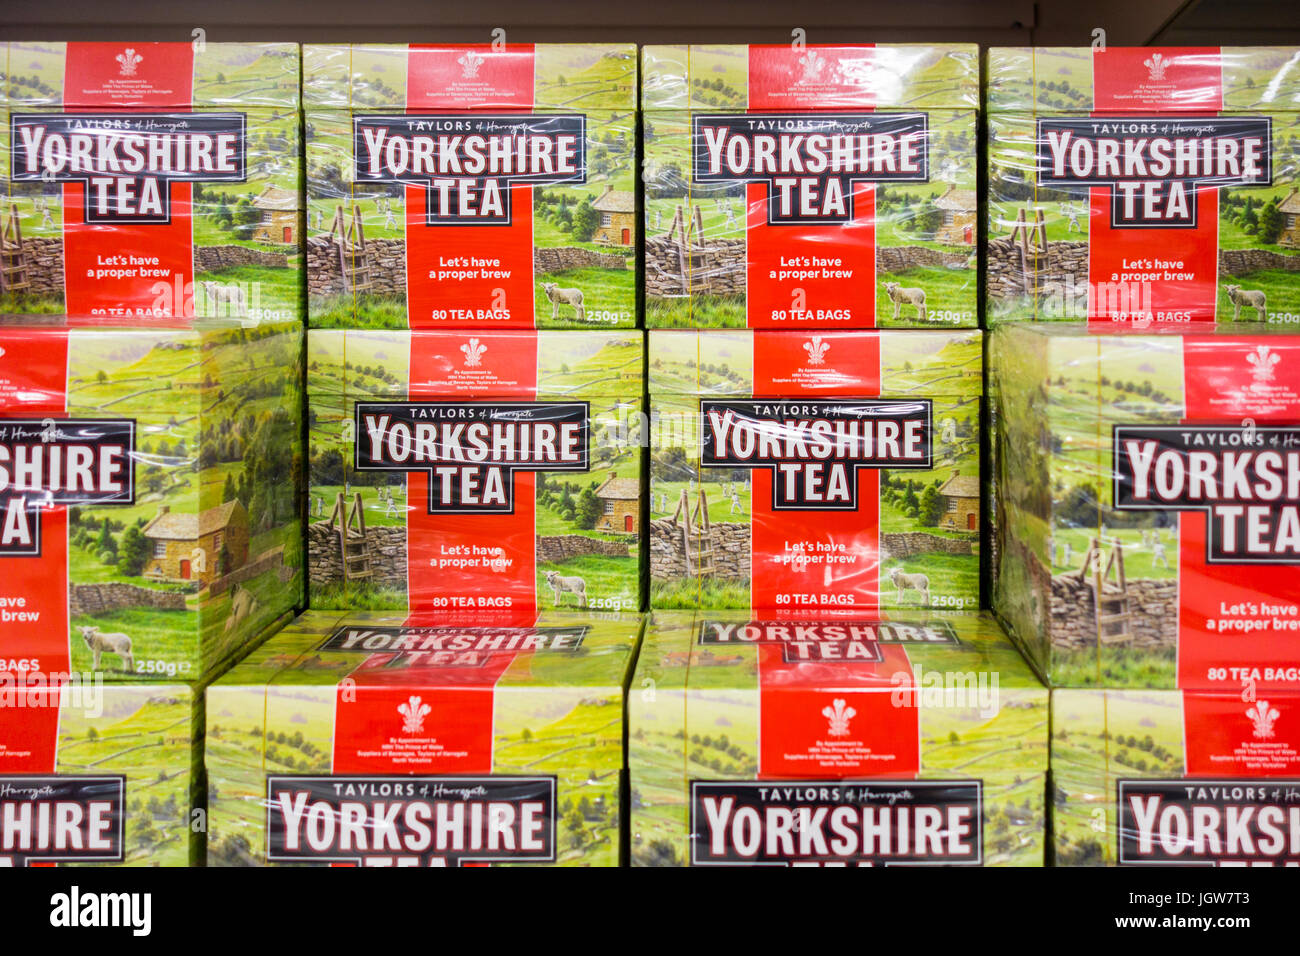 Packs of Yorkshire Tea for sale on a supermarket shelf in the UK - Stock Image